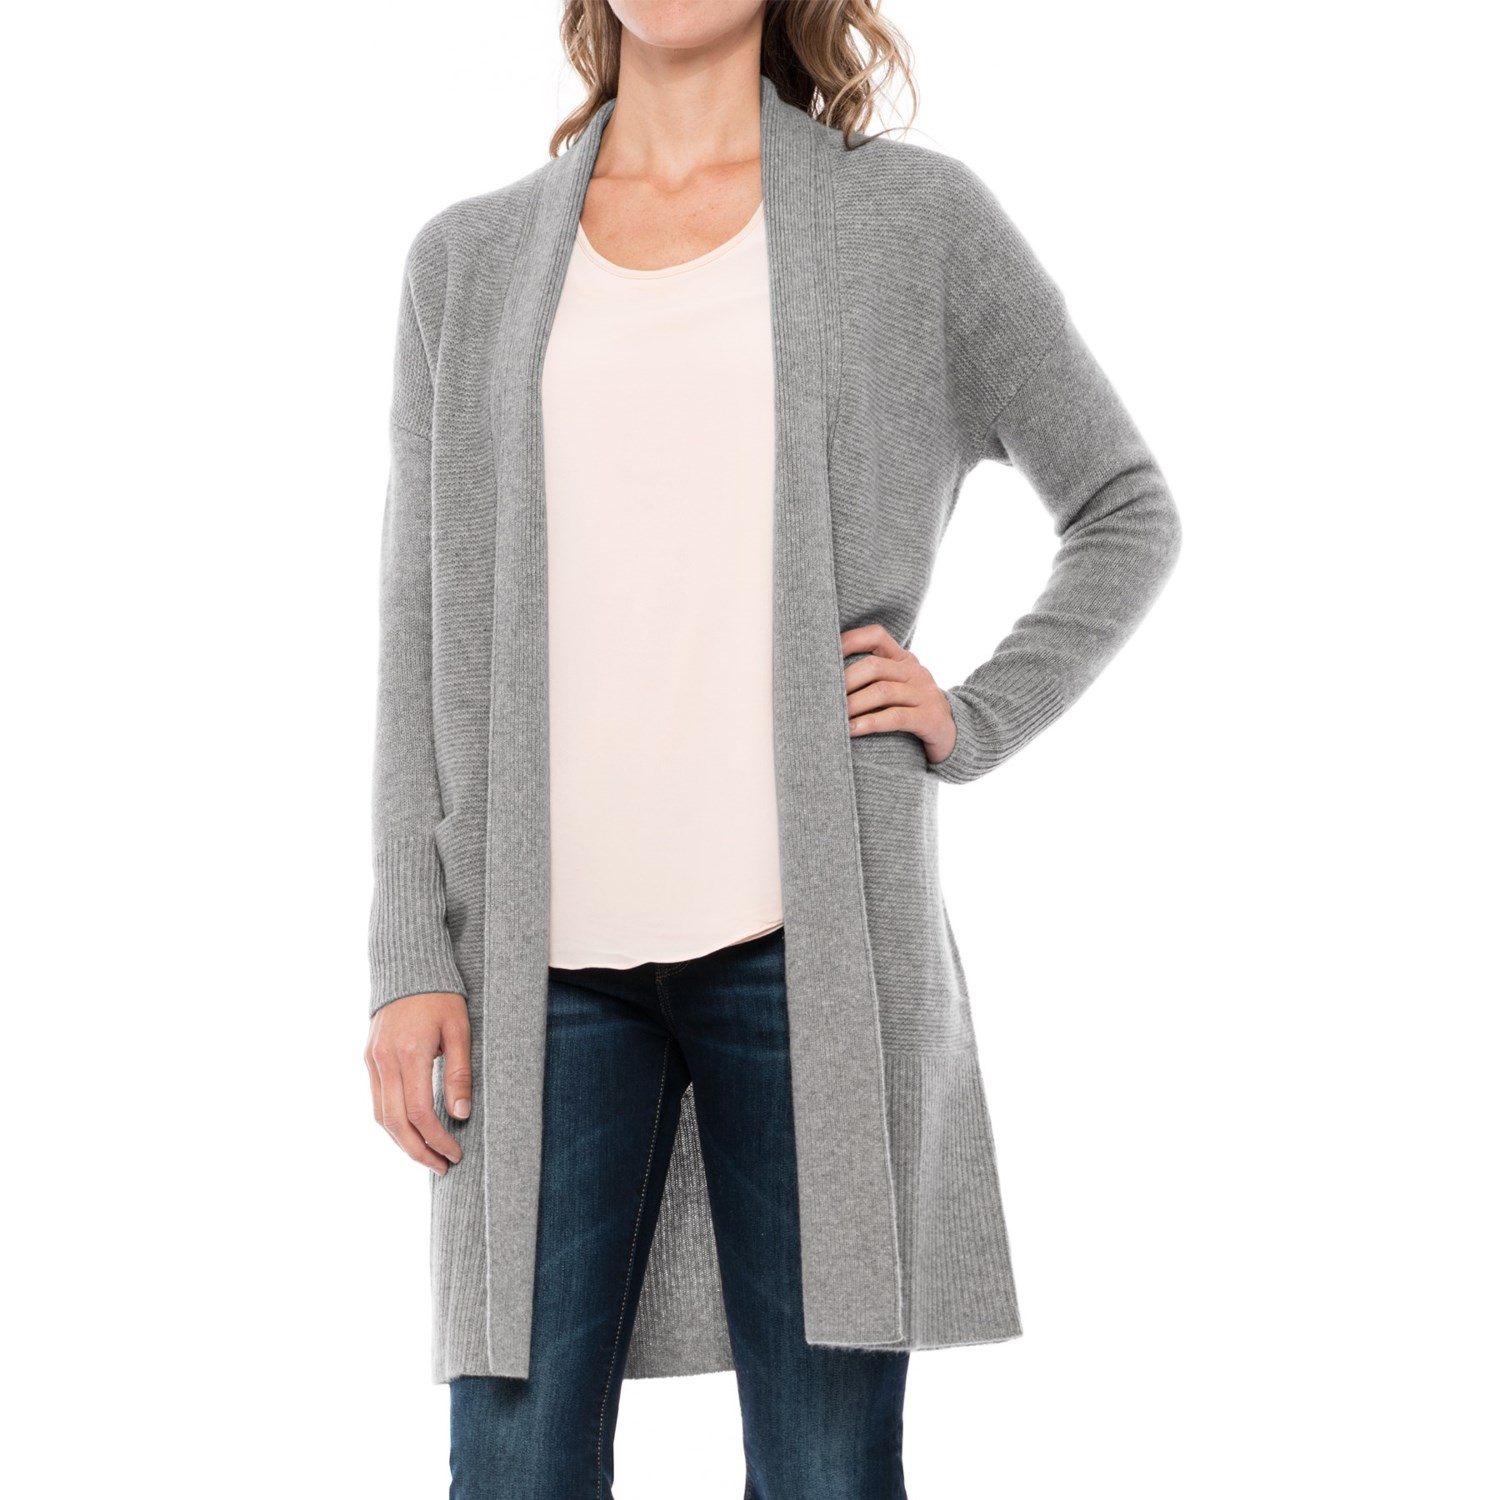 Tahari Drop-Shoulder Cashmere Cardigan Sweater (For Women) - Save 30%